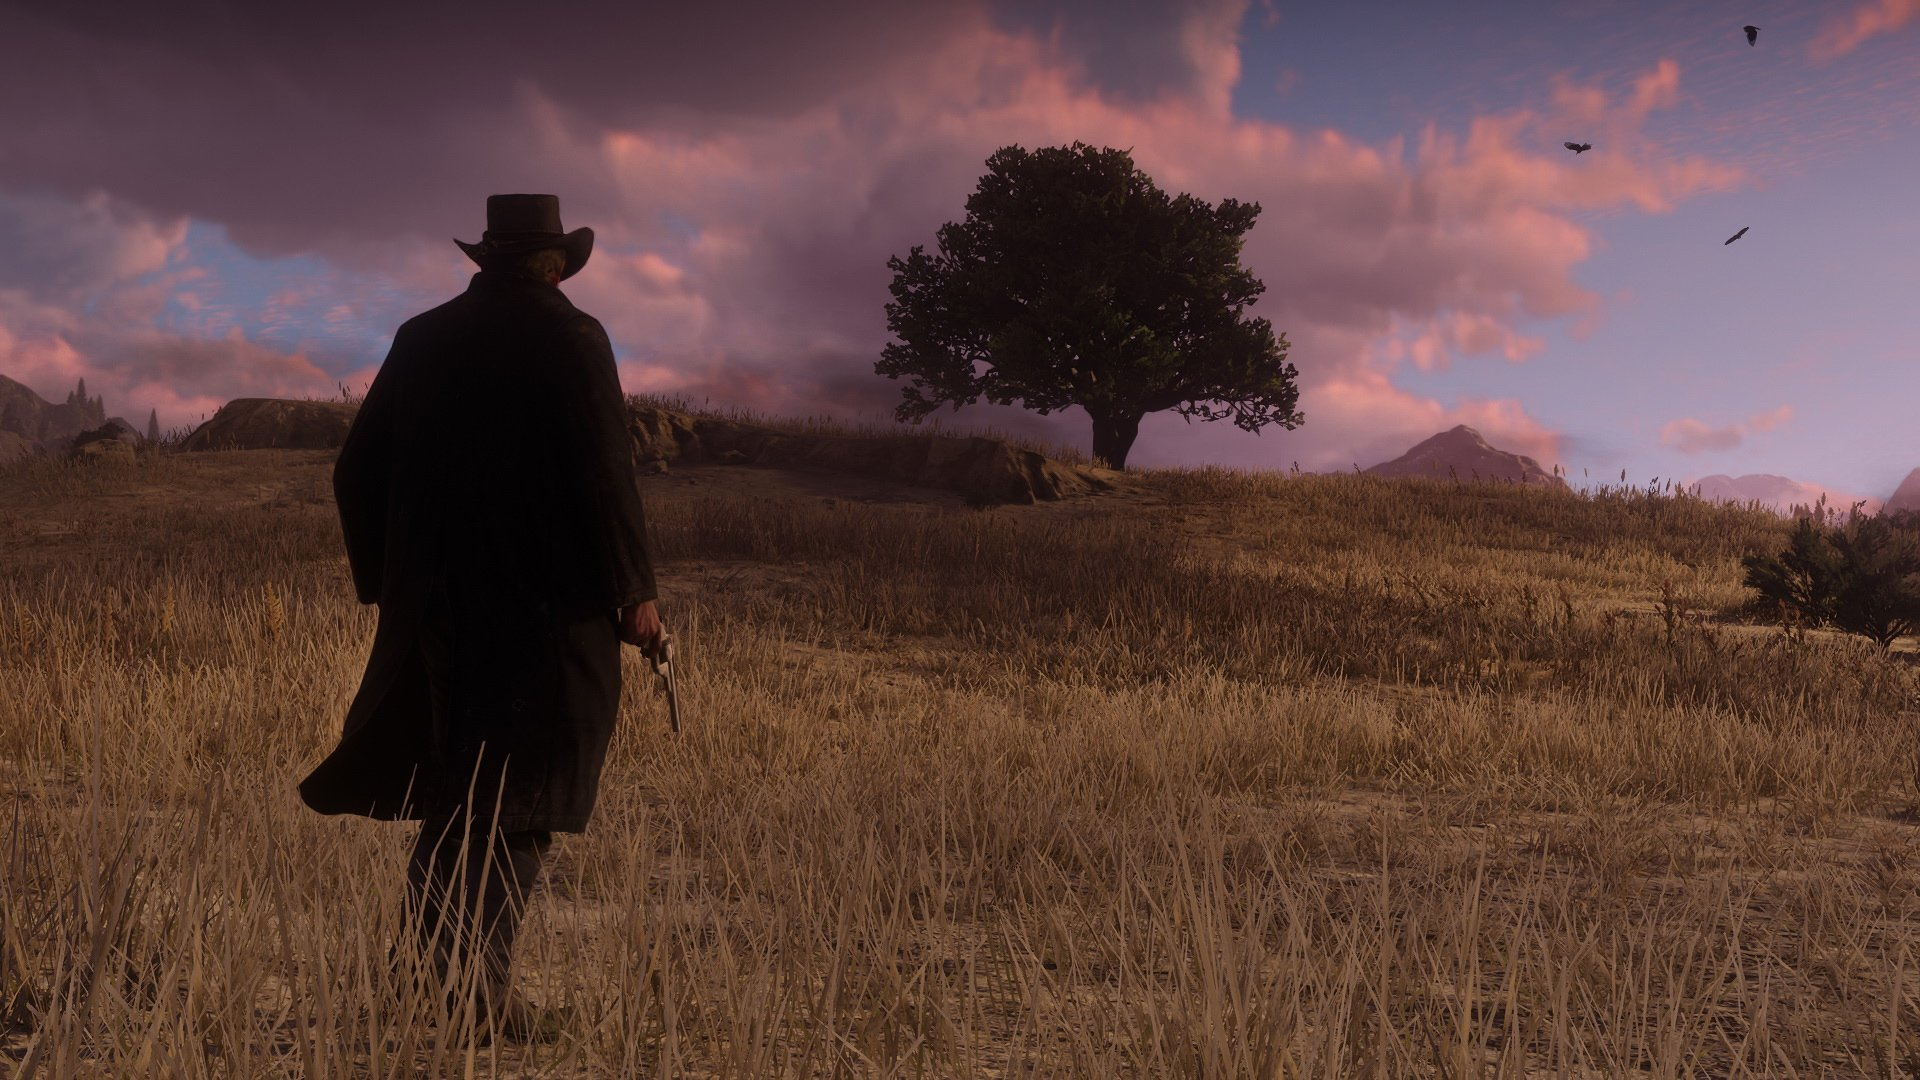 New Red Dead Redemption 2 screenshots make me want to ride off into the sunset screenshot